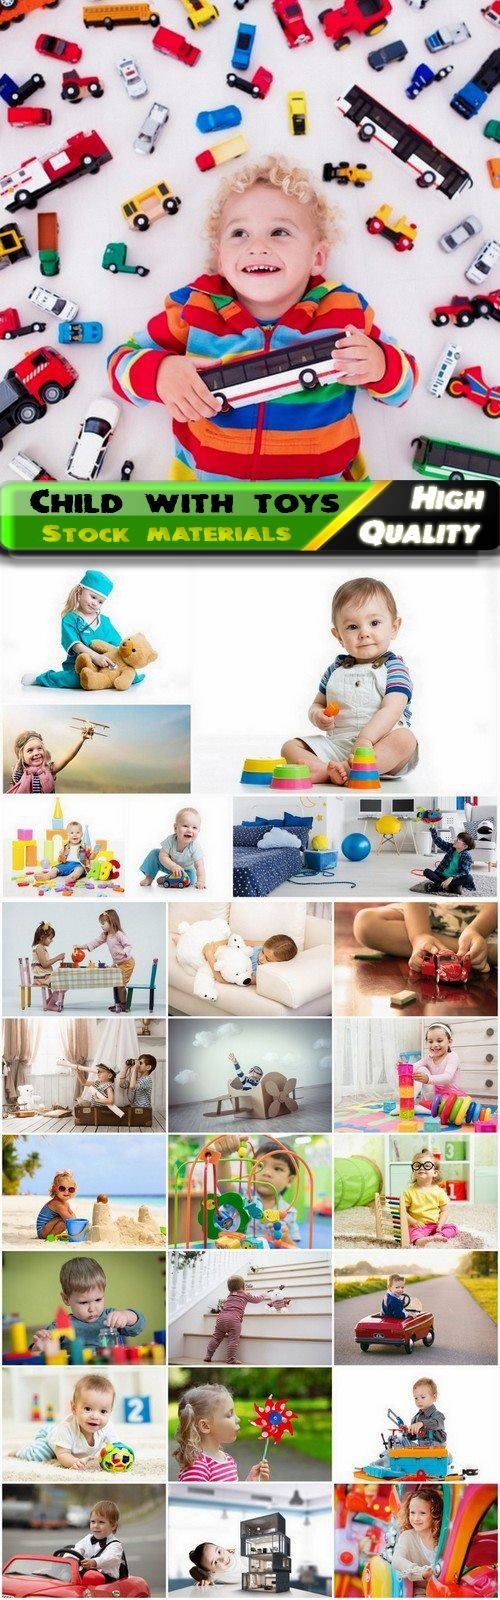 Happy child and kids play with toys - 25 HQ Jpg